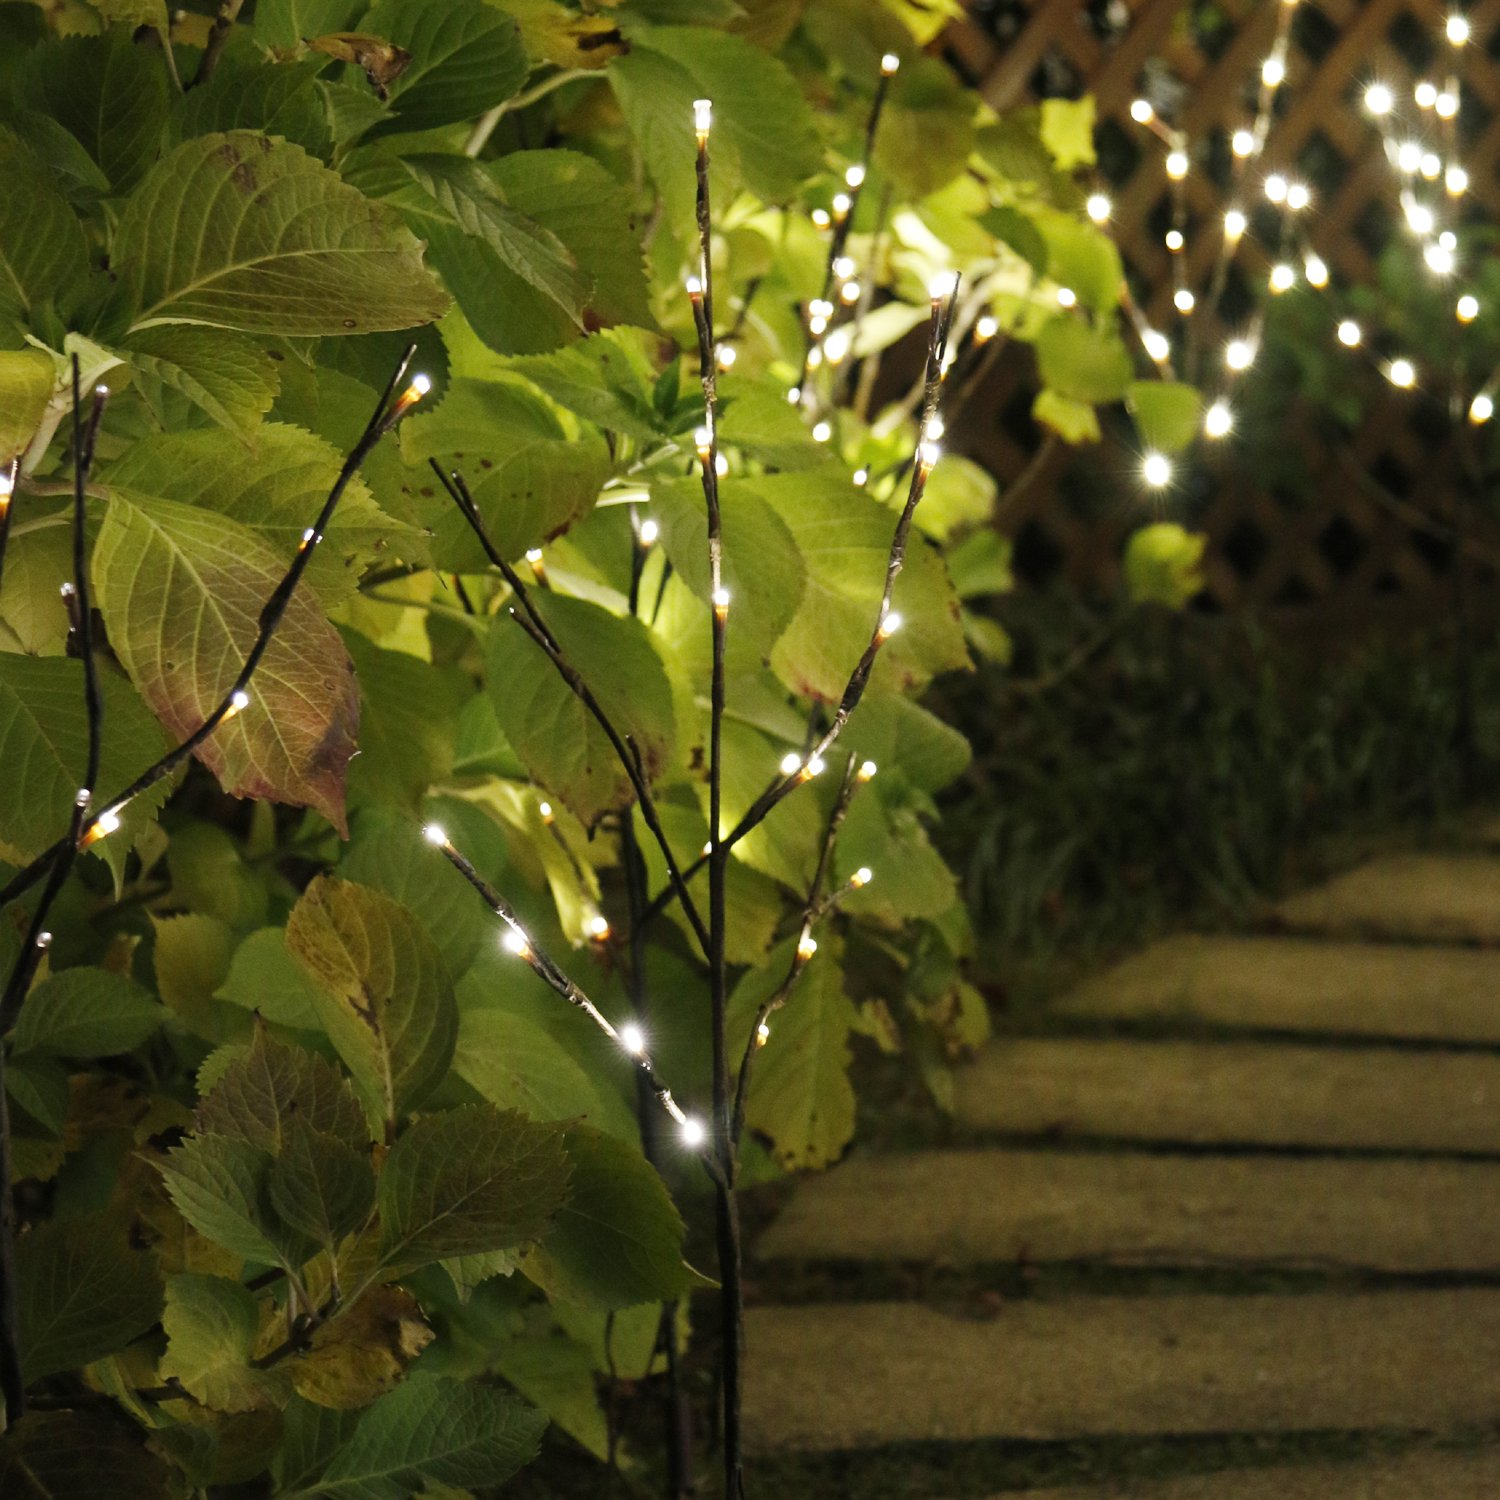 EAMBRITE 3PK 30 Brown Wrapped Lighted Twig Stake with 60LT Warm White LED bulbs for outdoor and indoor use 803007